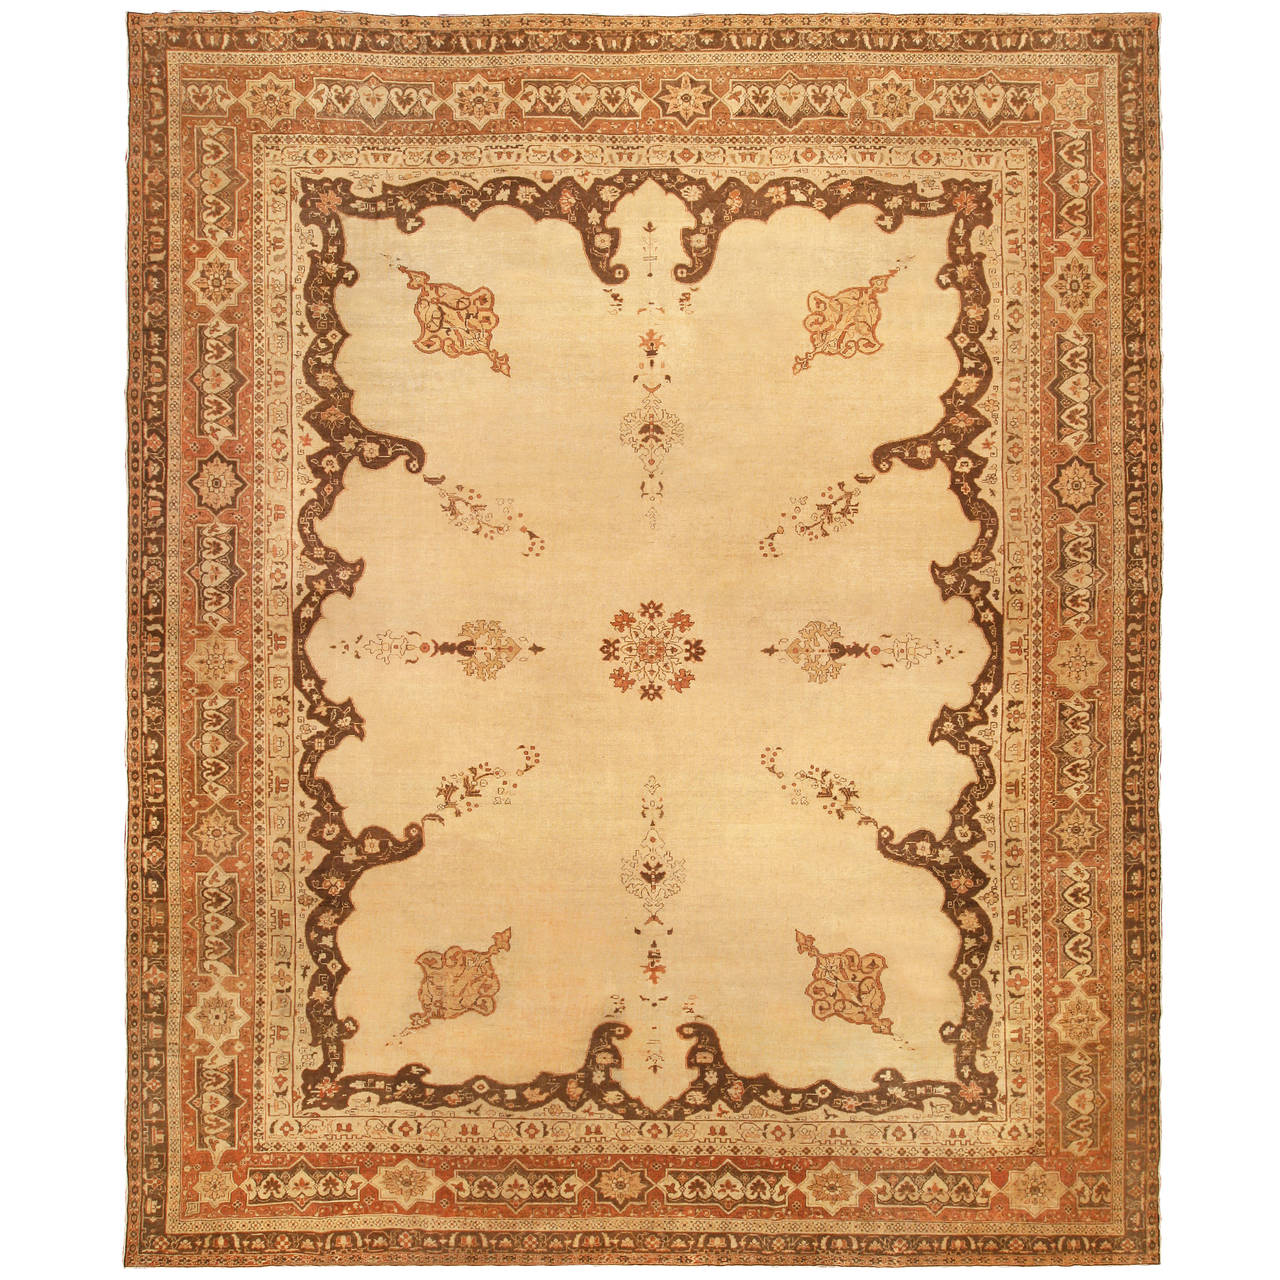 Antique Indian Rugs: Antique Indian Amritsar Rug For Sale At 1stdibs